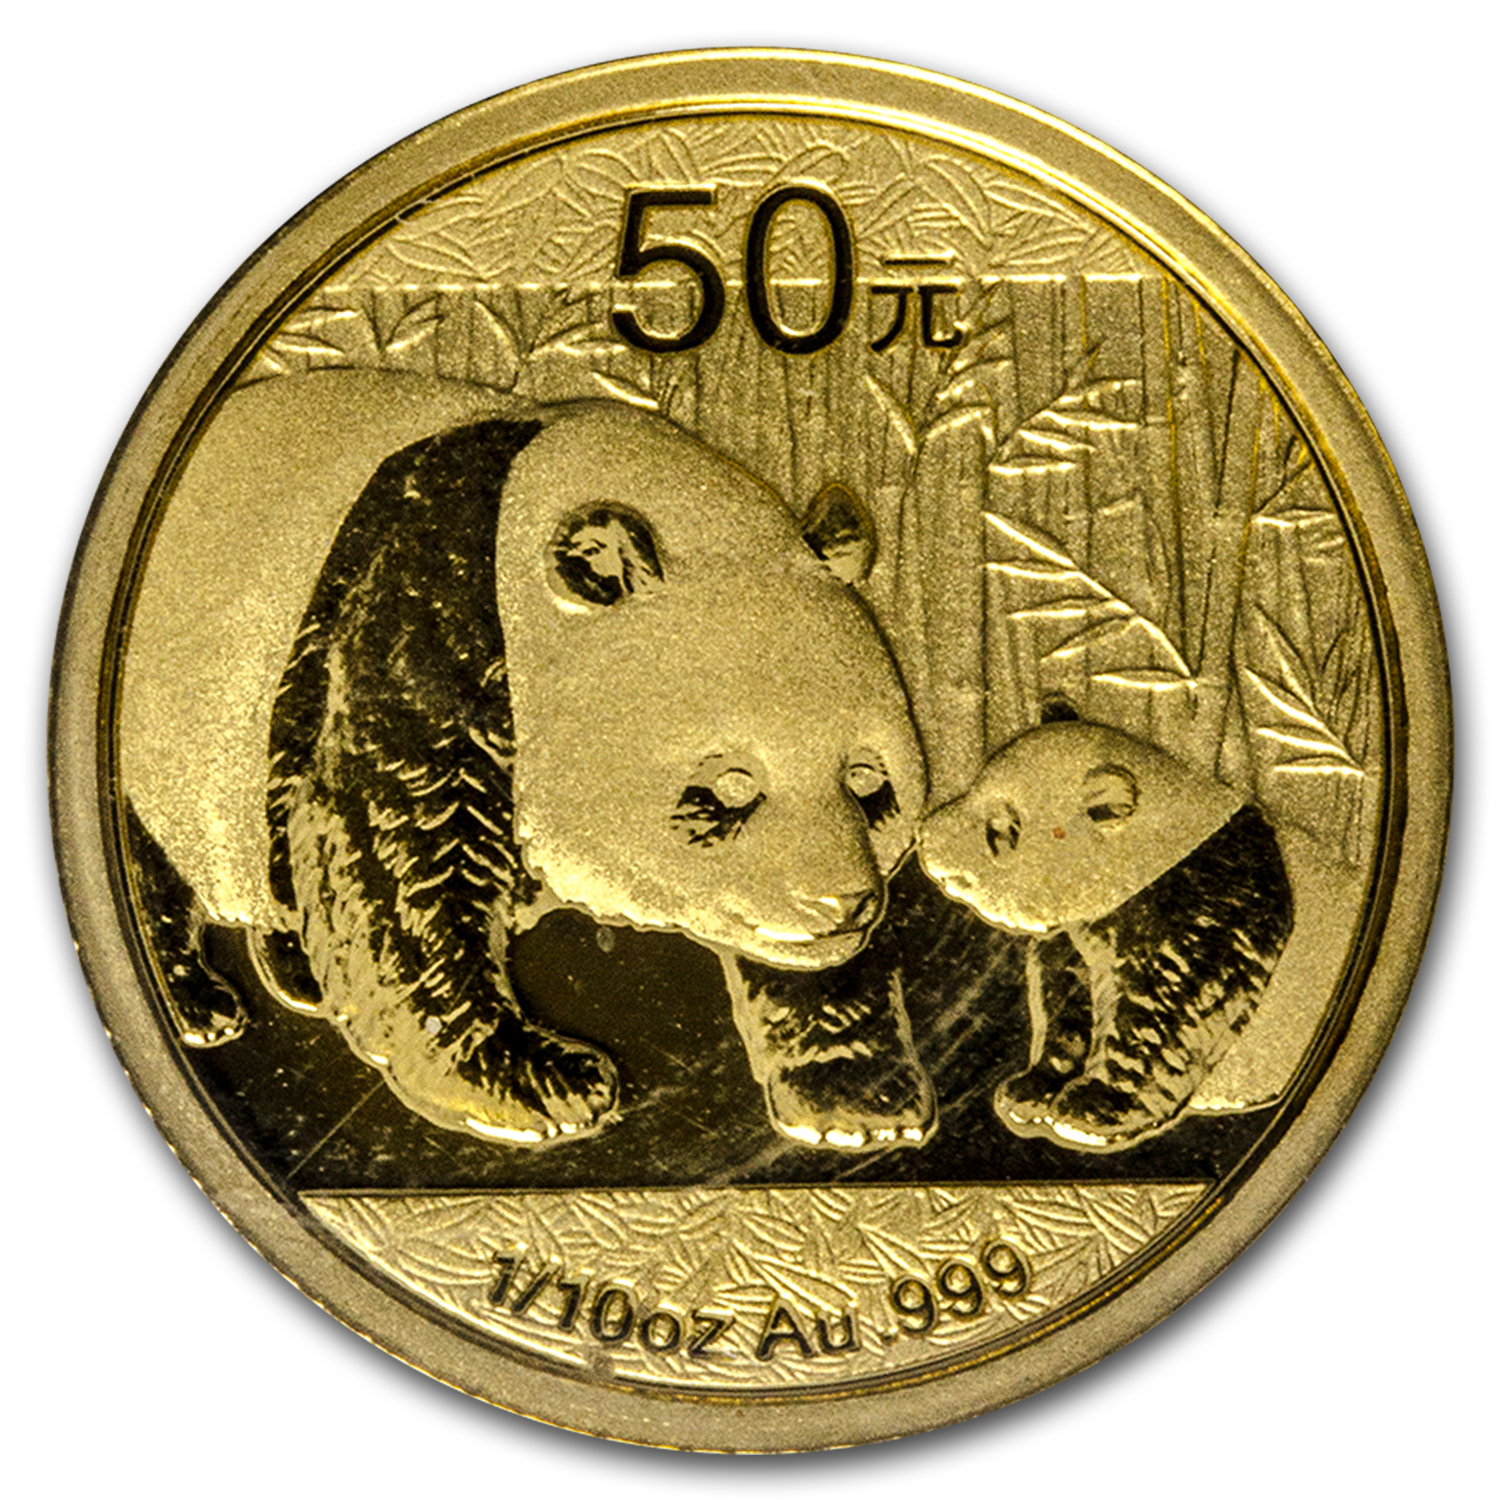 2011 China 1/10 oz Gold Panda BU (Sealed)